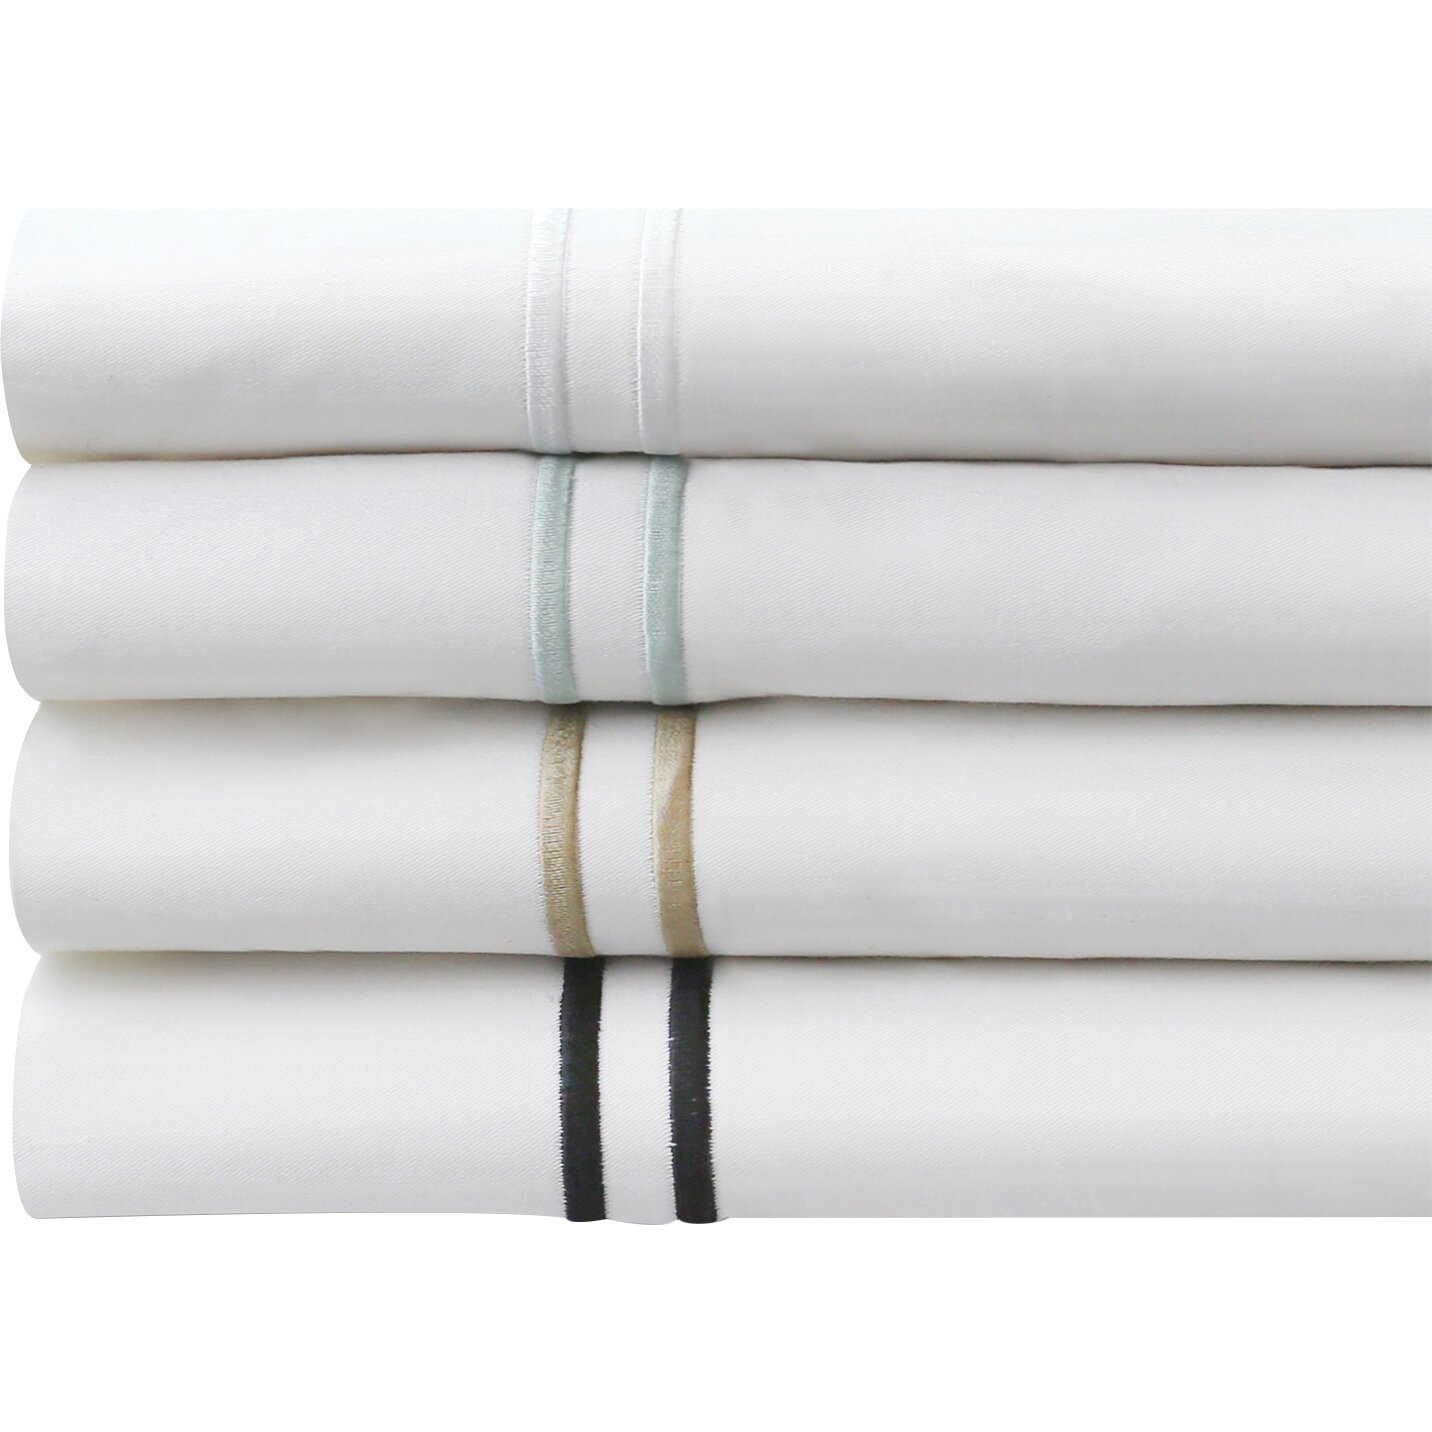 Malouf Sheets Reviews Malouf Hotel 200 Thread Count